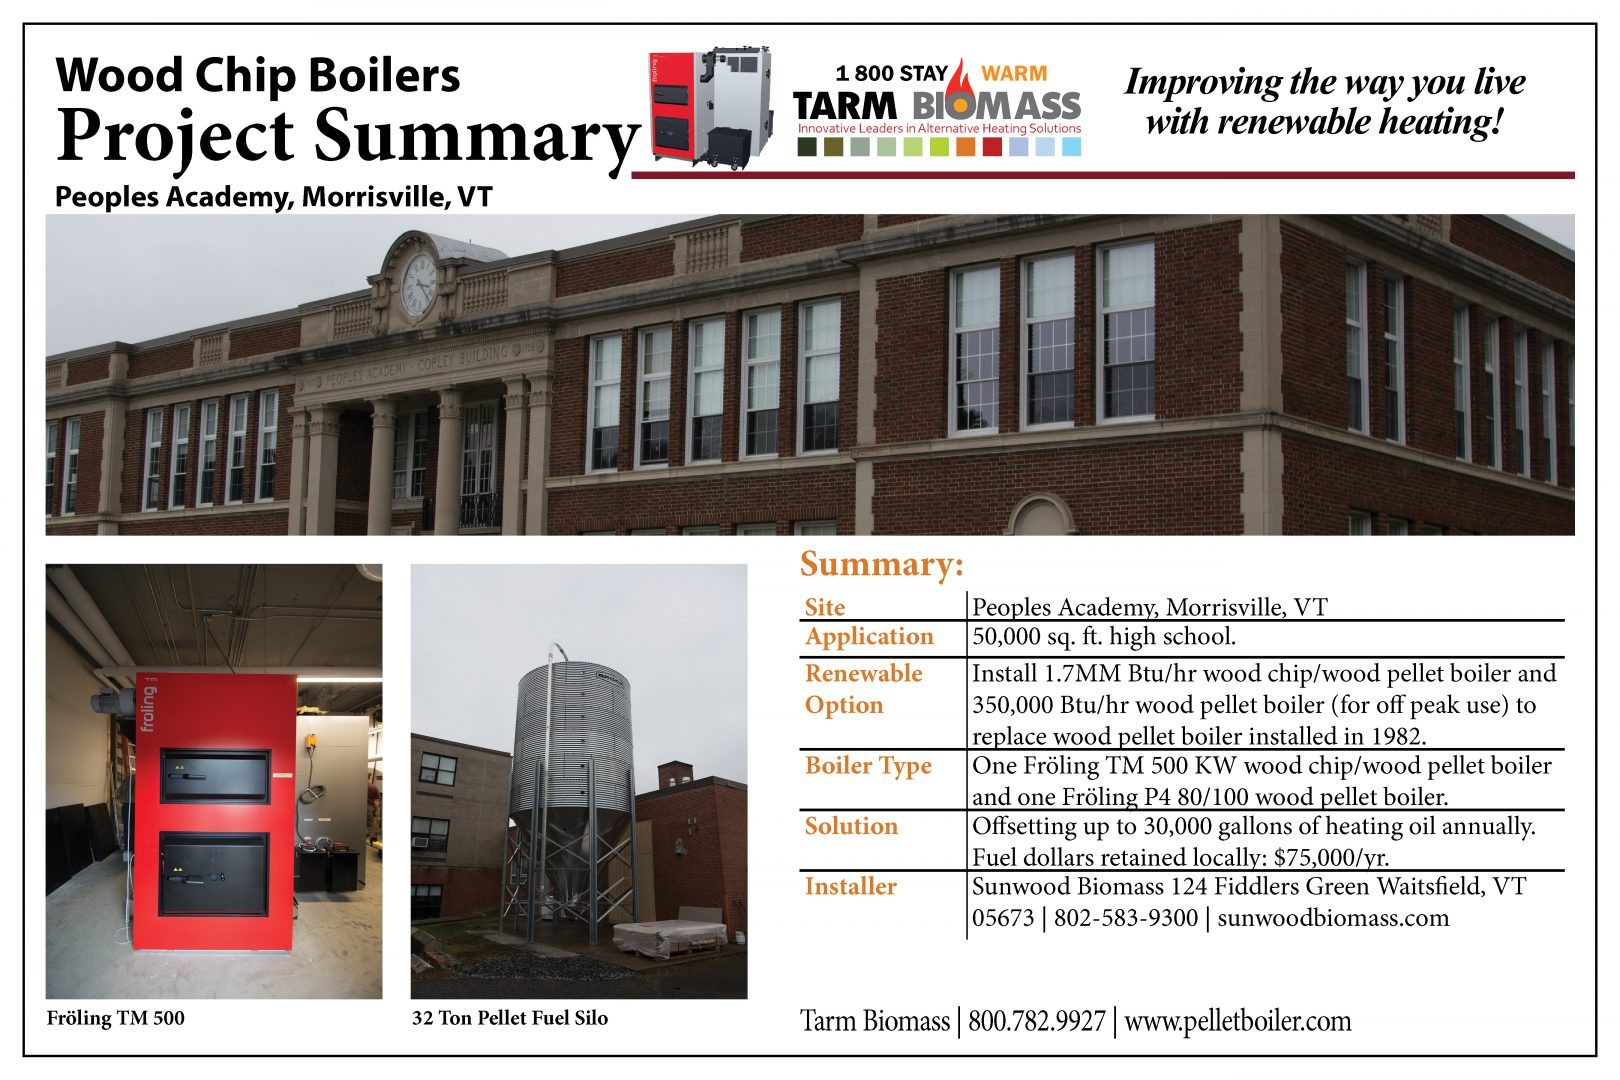 wood chip boiler project summary